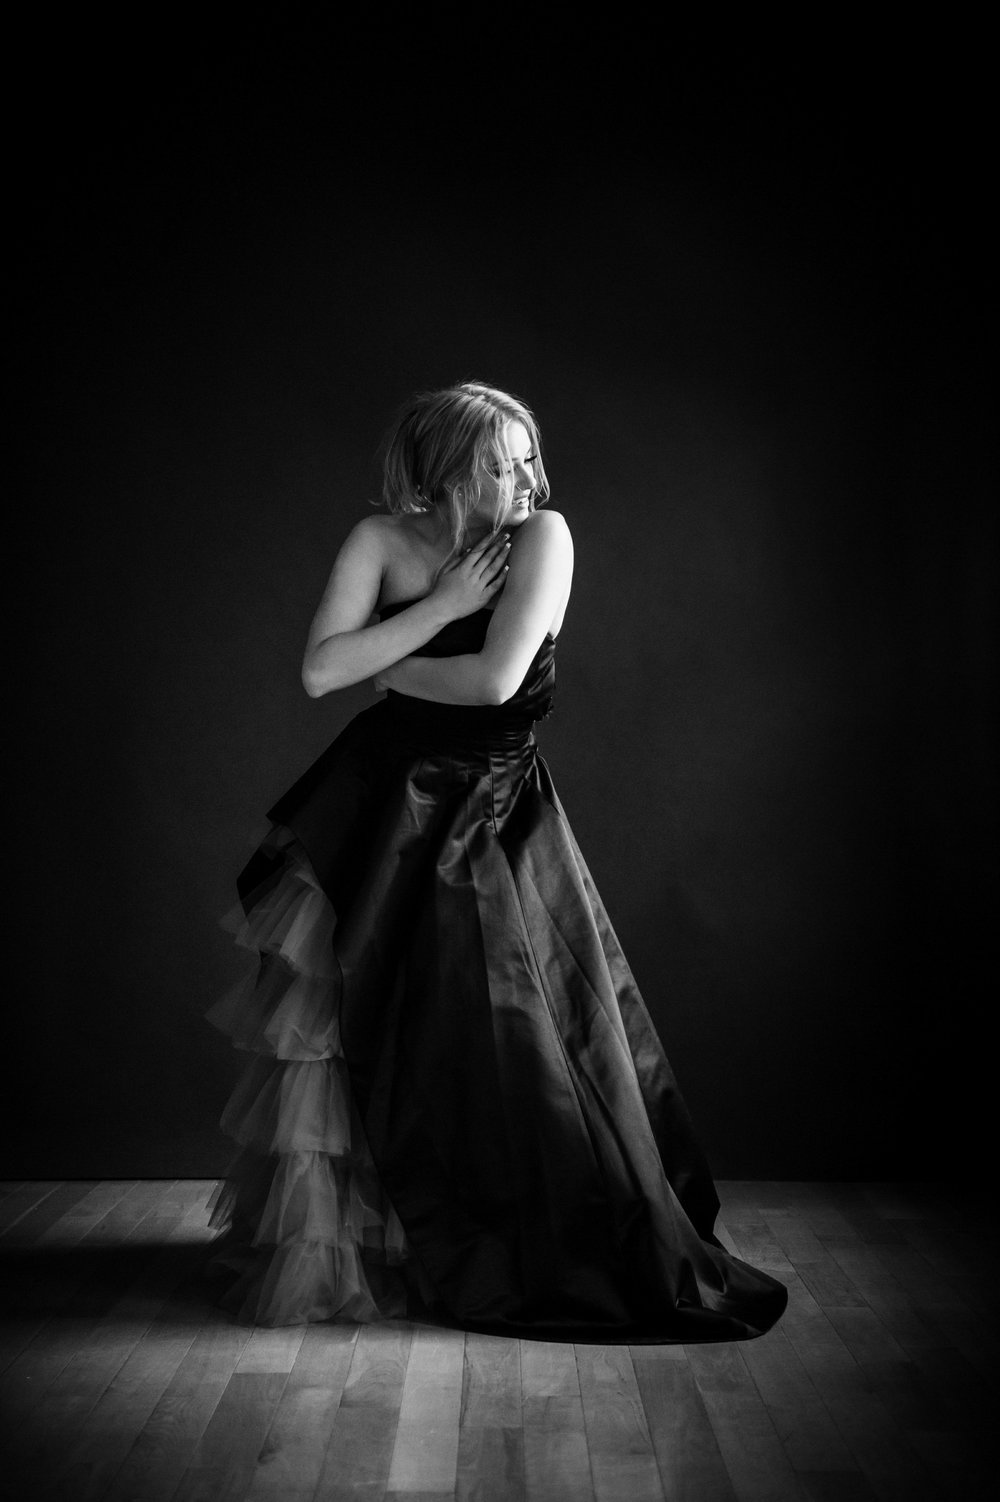 nEO_IMG_Xing Photography Soul of Dance - Haley-144-BW.jpg